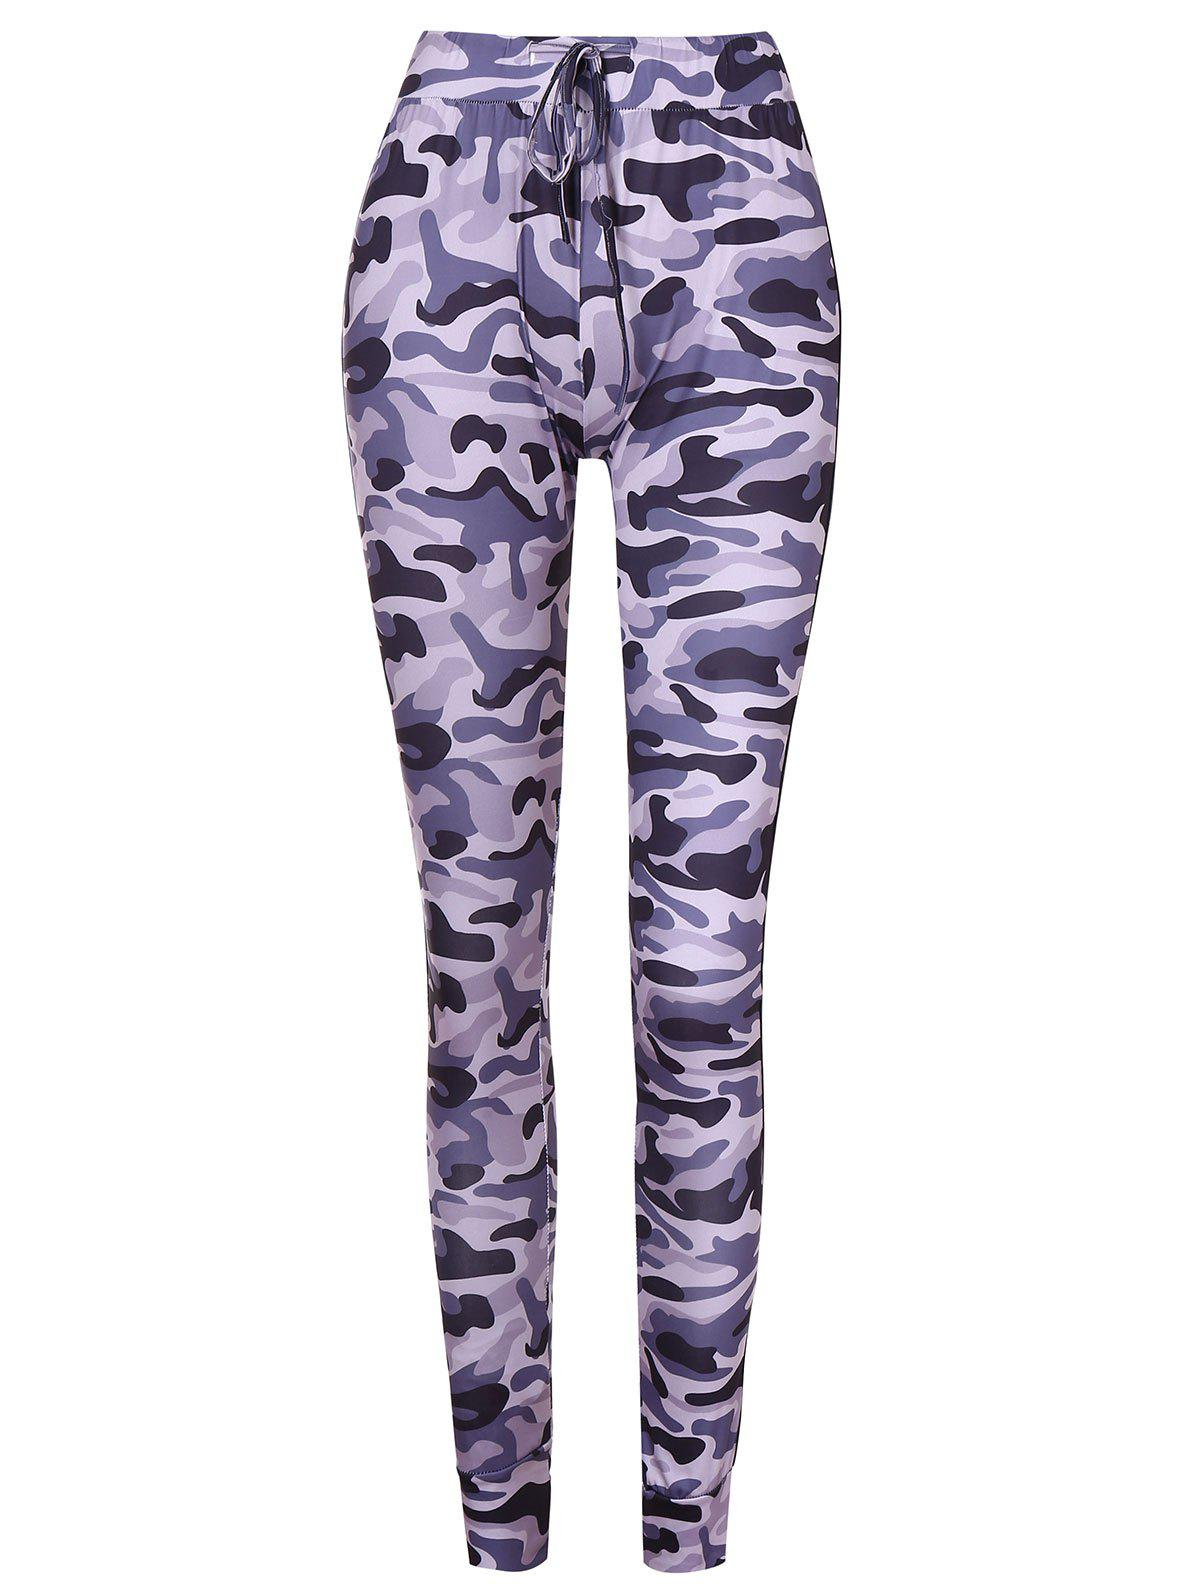 Store Drawstring Camouflage Pants